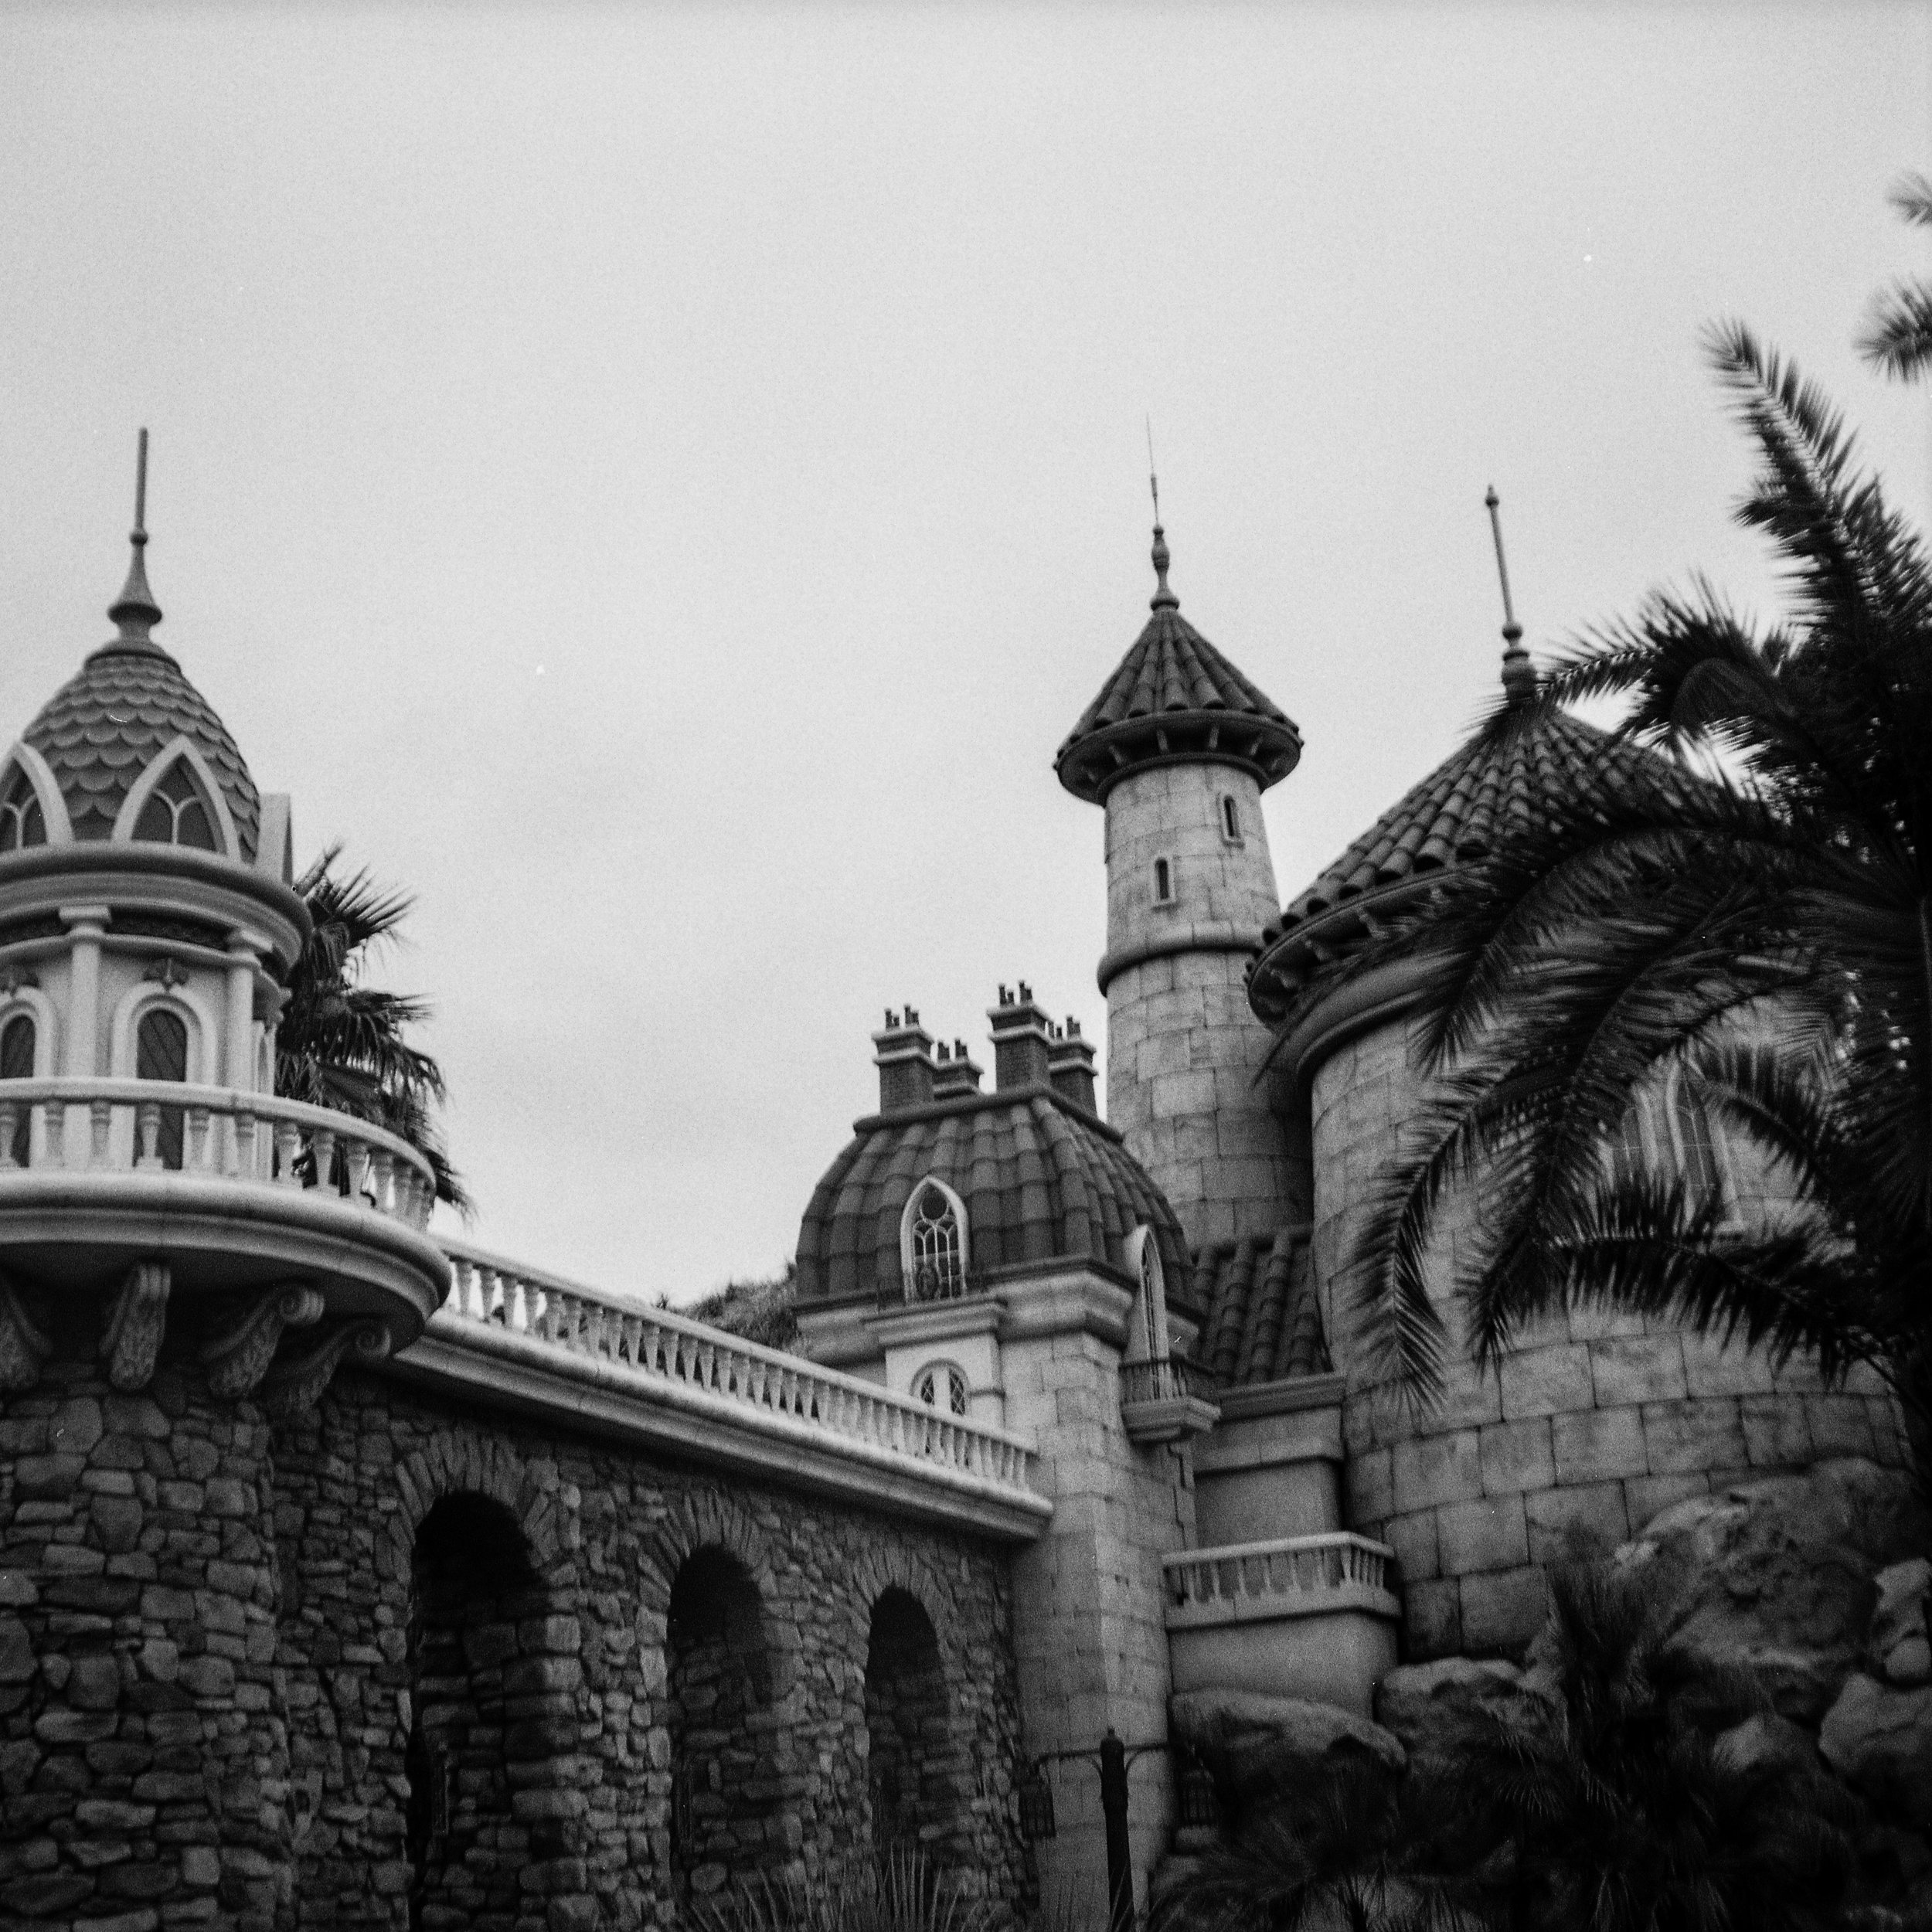 1949 Kodak Brownie Hawkeye Photo Medium Format 620 Film Zoe Kissel Photo Walt Disney World Magic Kingdom New Fantasyland Under The Sea Journey of the Little Mermaid